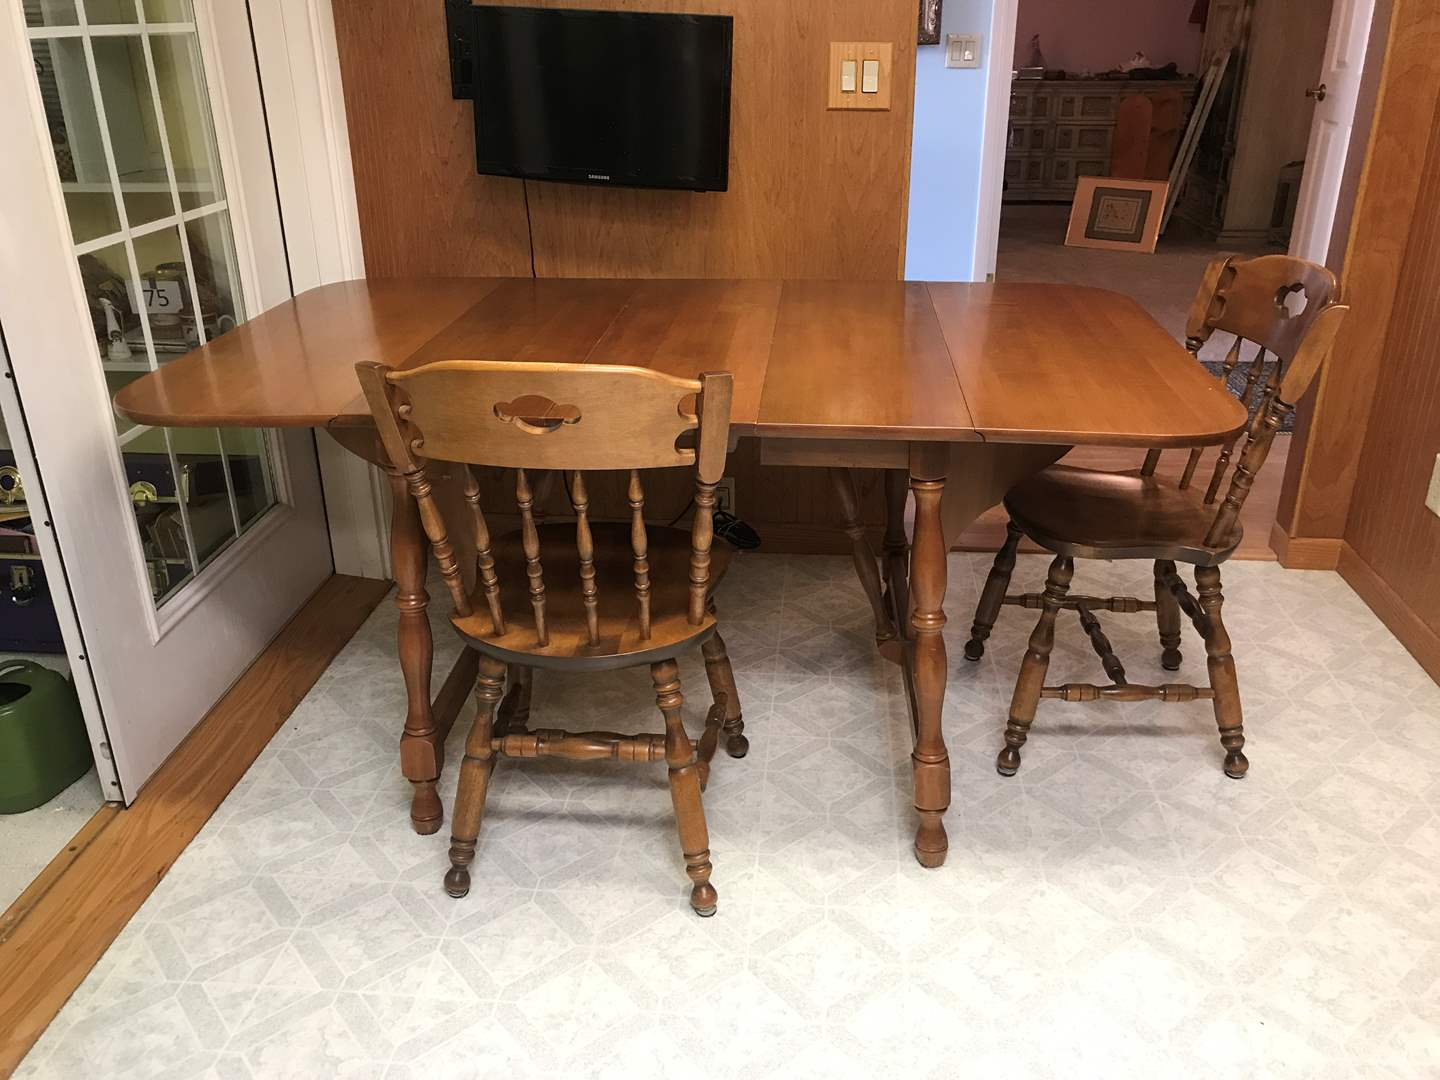 Lot # 135 - Very Nice S Bent & Bros Dining Room Table w/2 Chairs (main image)